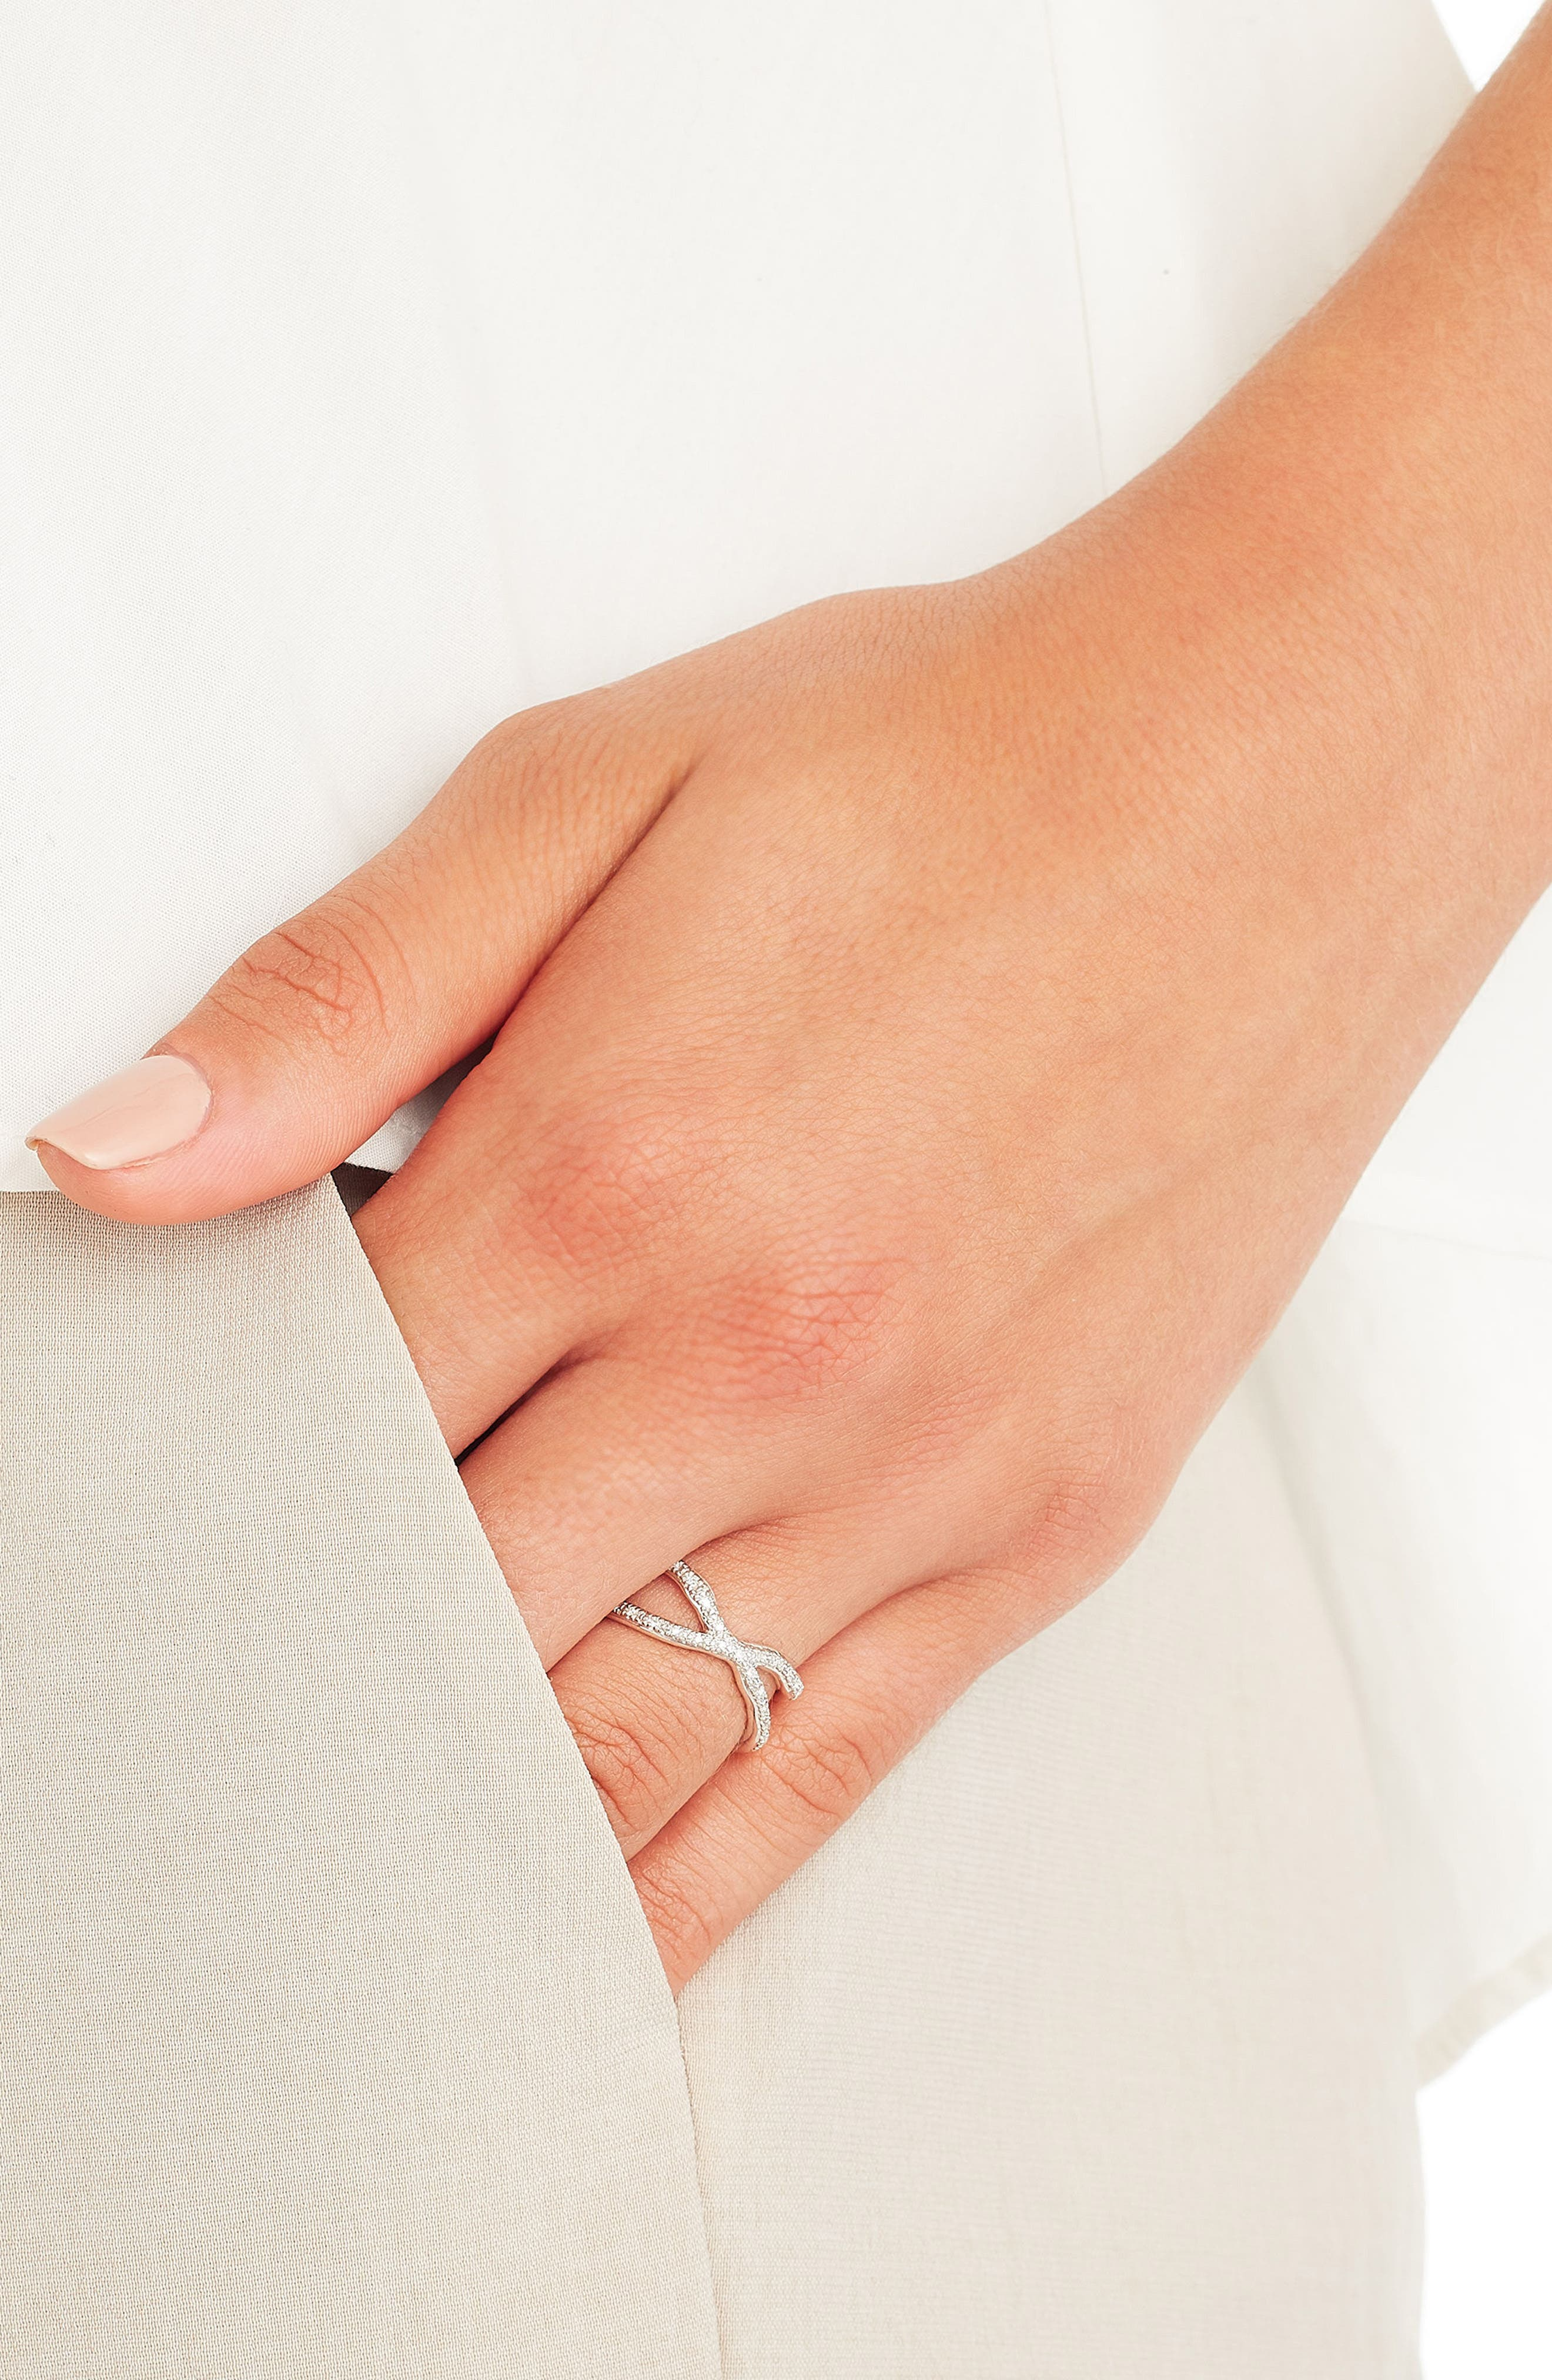 Riva Diamond Ring,                             Alternate thumbnail 4, color,                             SILVER/ DIAMOND